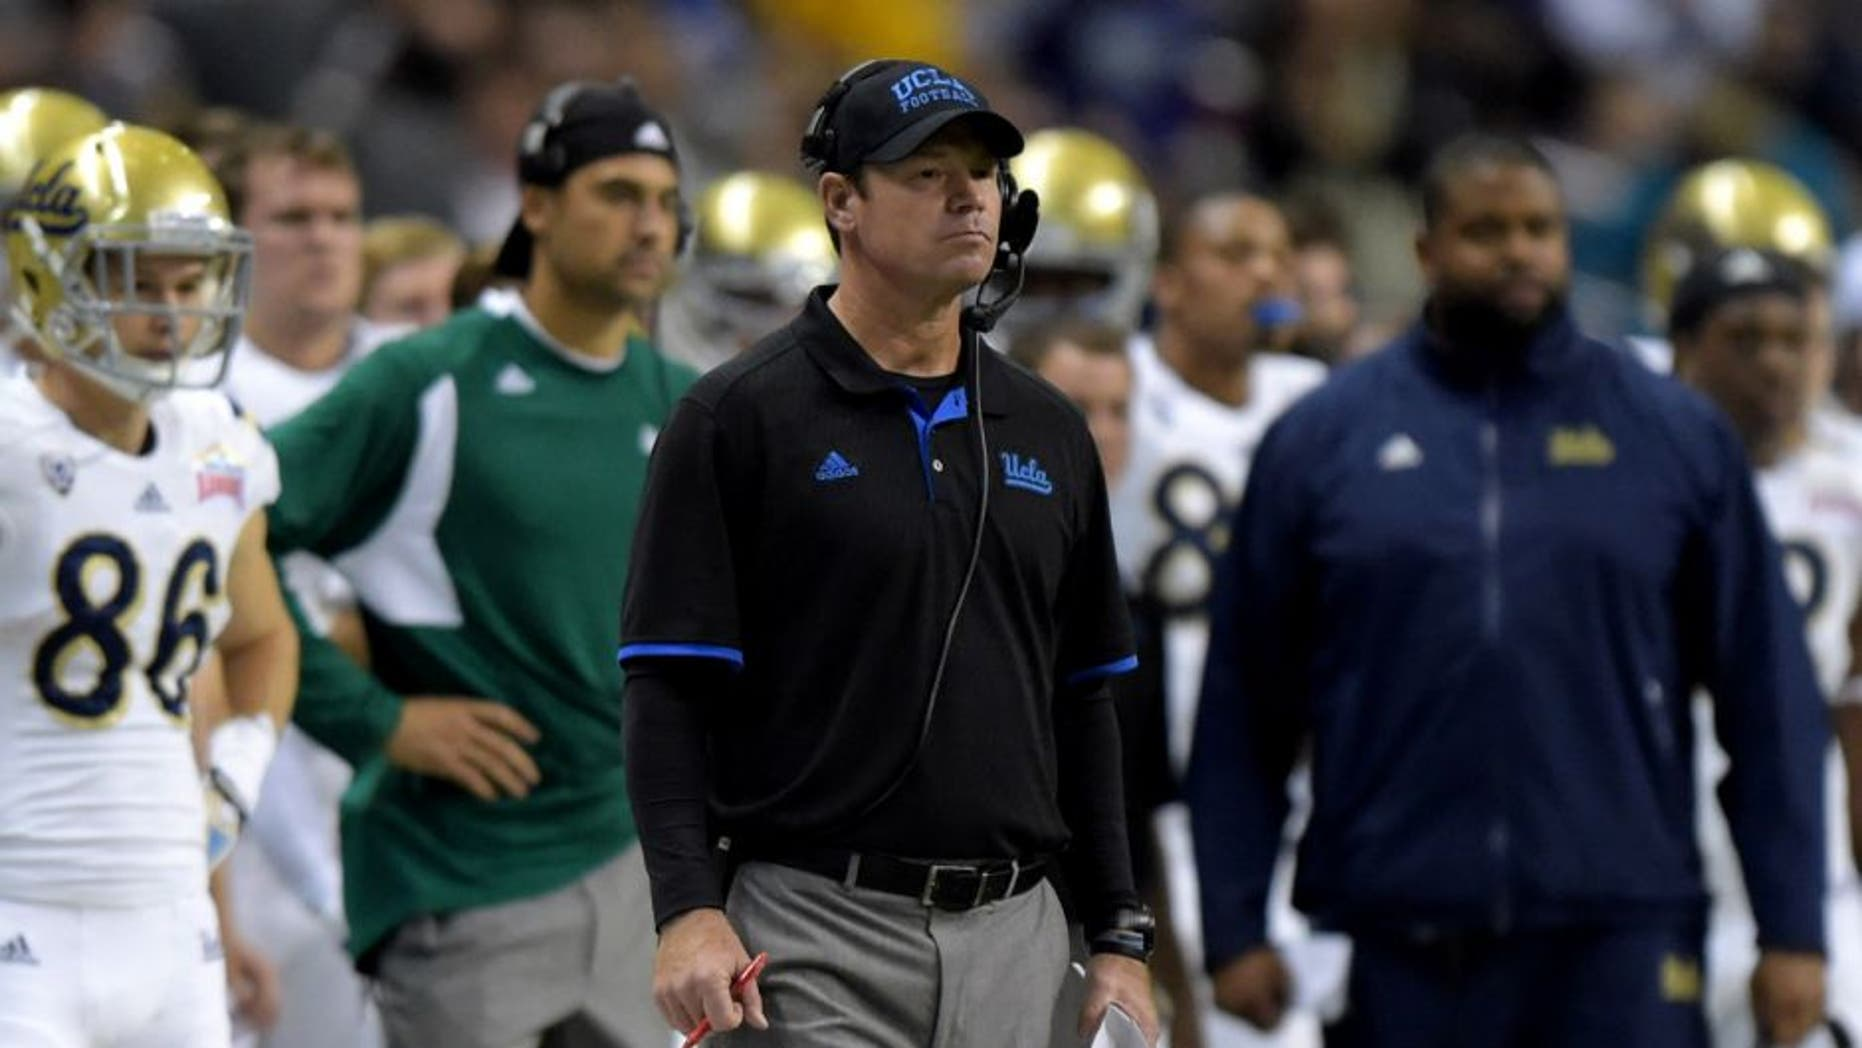 Jan 2, 2015; San Antonio, TX, USA; UCLA Bruins coach Jim Mora watches on the sidelines against the Kansas State Wildcats in the 2015 Alamo Bowl at Alamodome. UCLA defeated Kansas State 40-35. Mandatory Credit: Kirby Lee-USA TODAY Sports